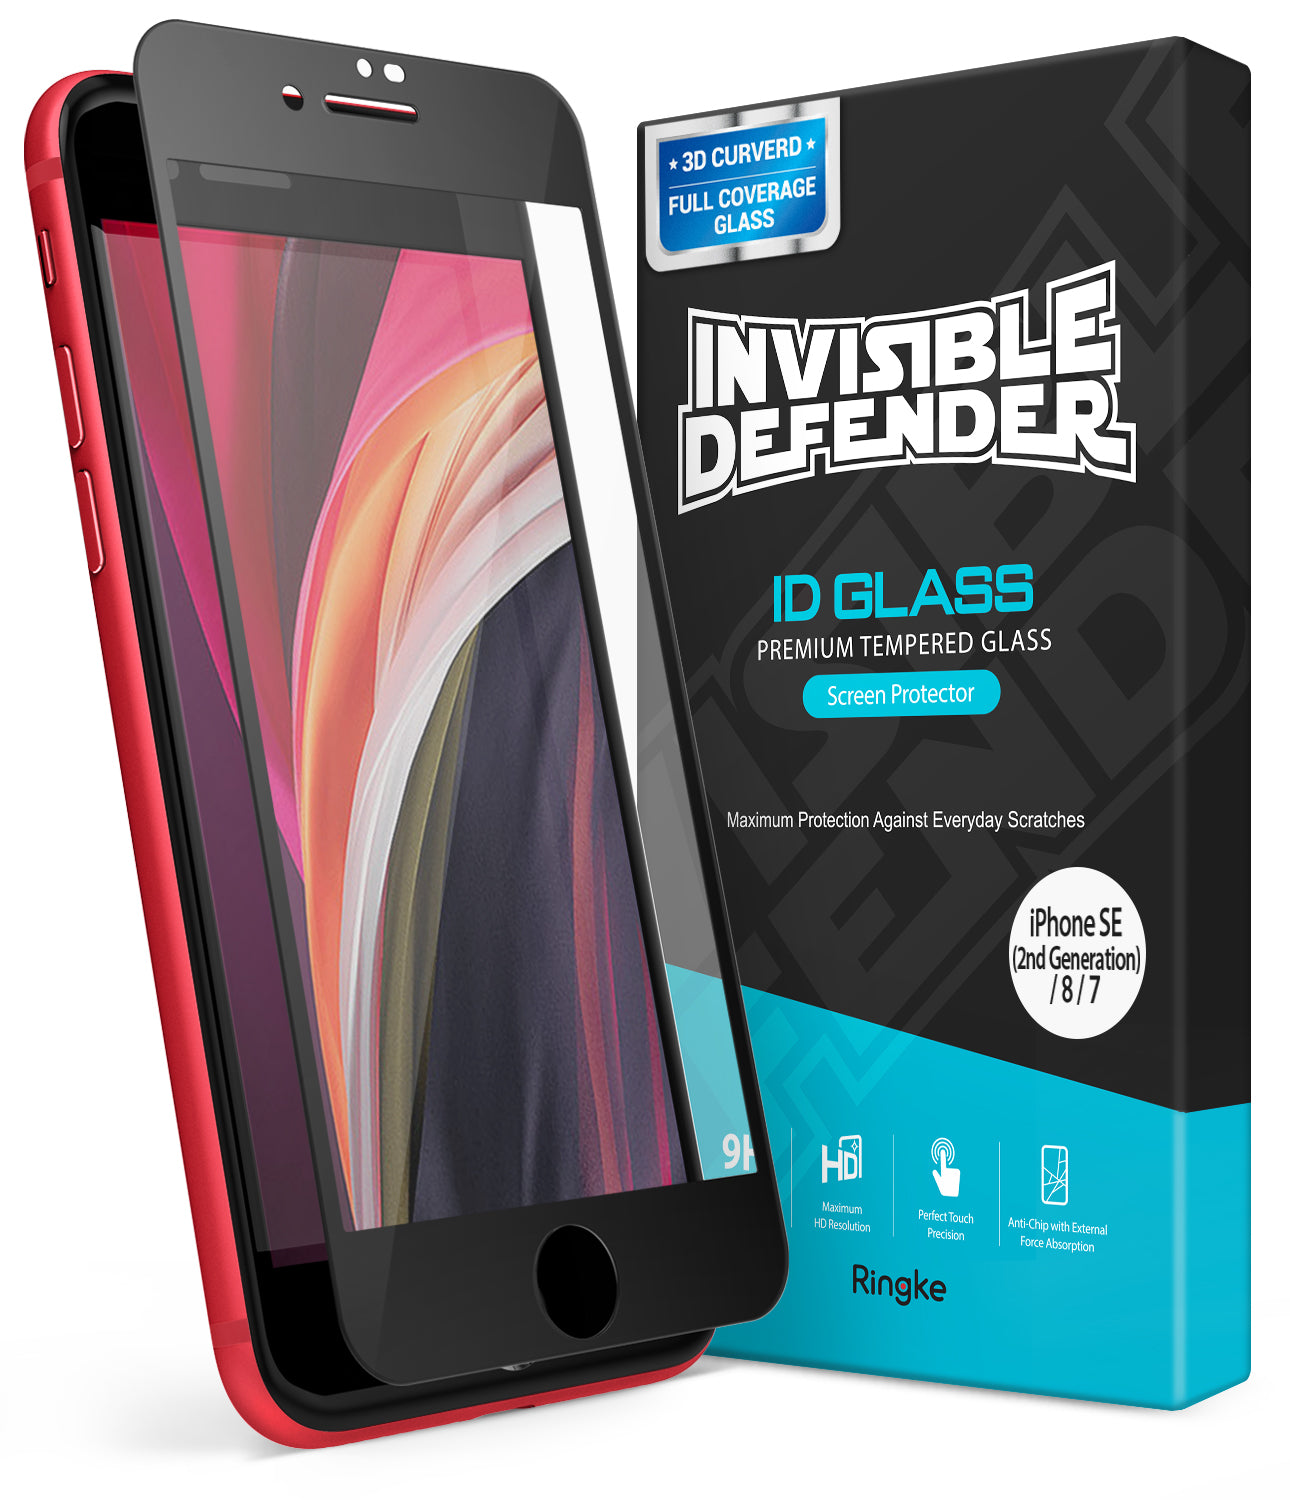 invisible defender glass full cover for iphone se 2020 / iphone 8 / iphone 7